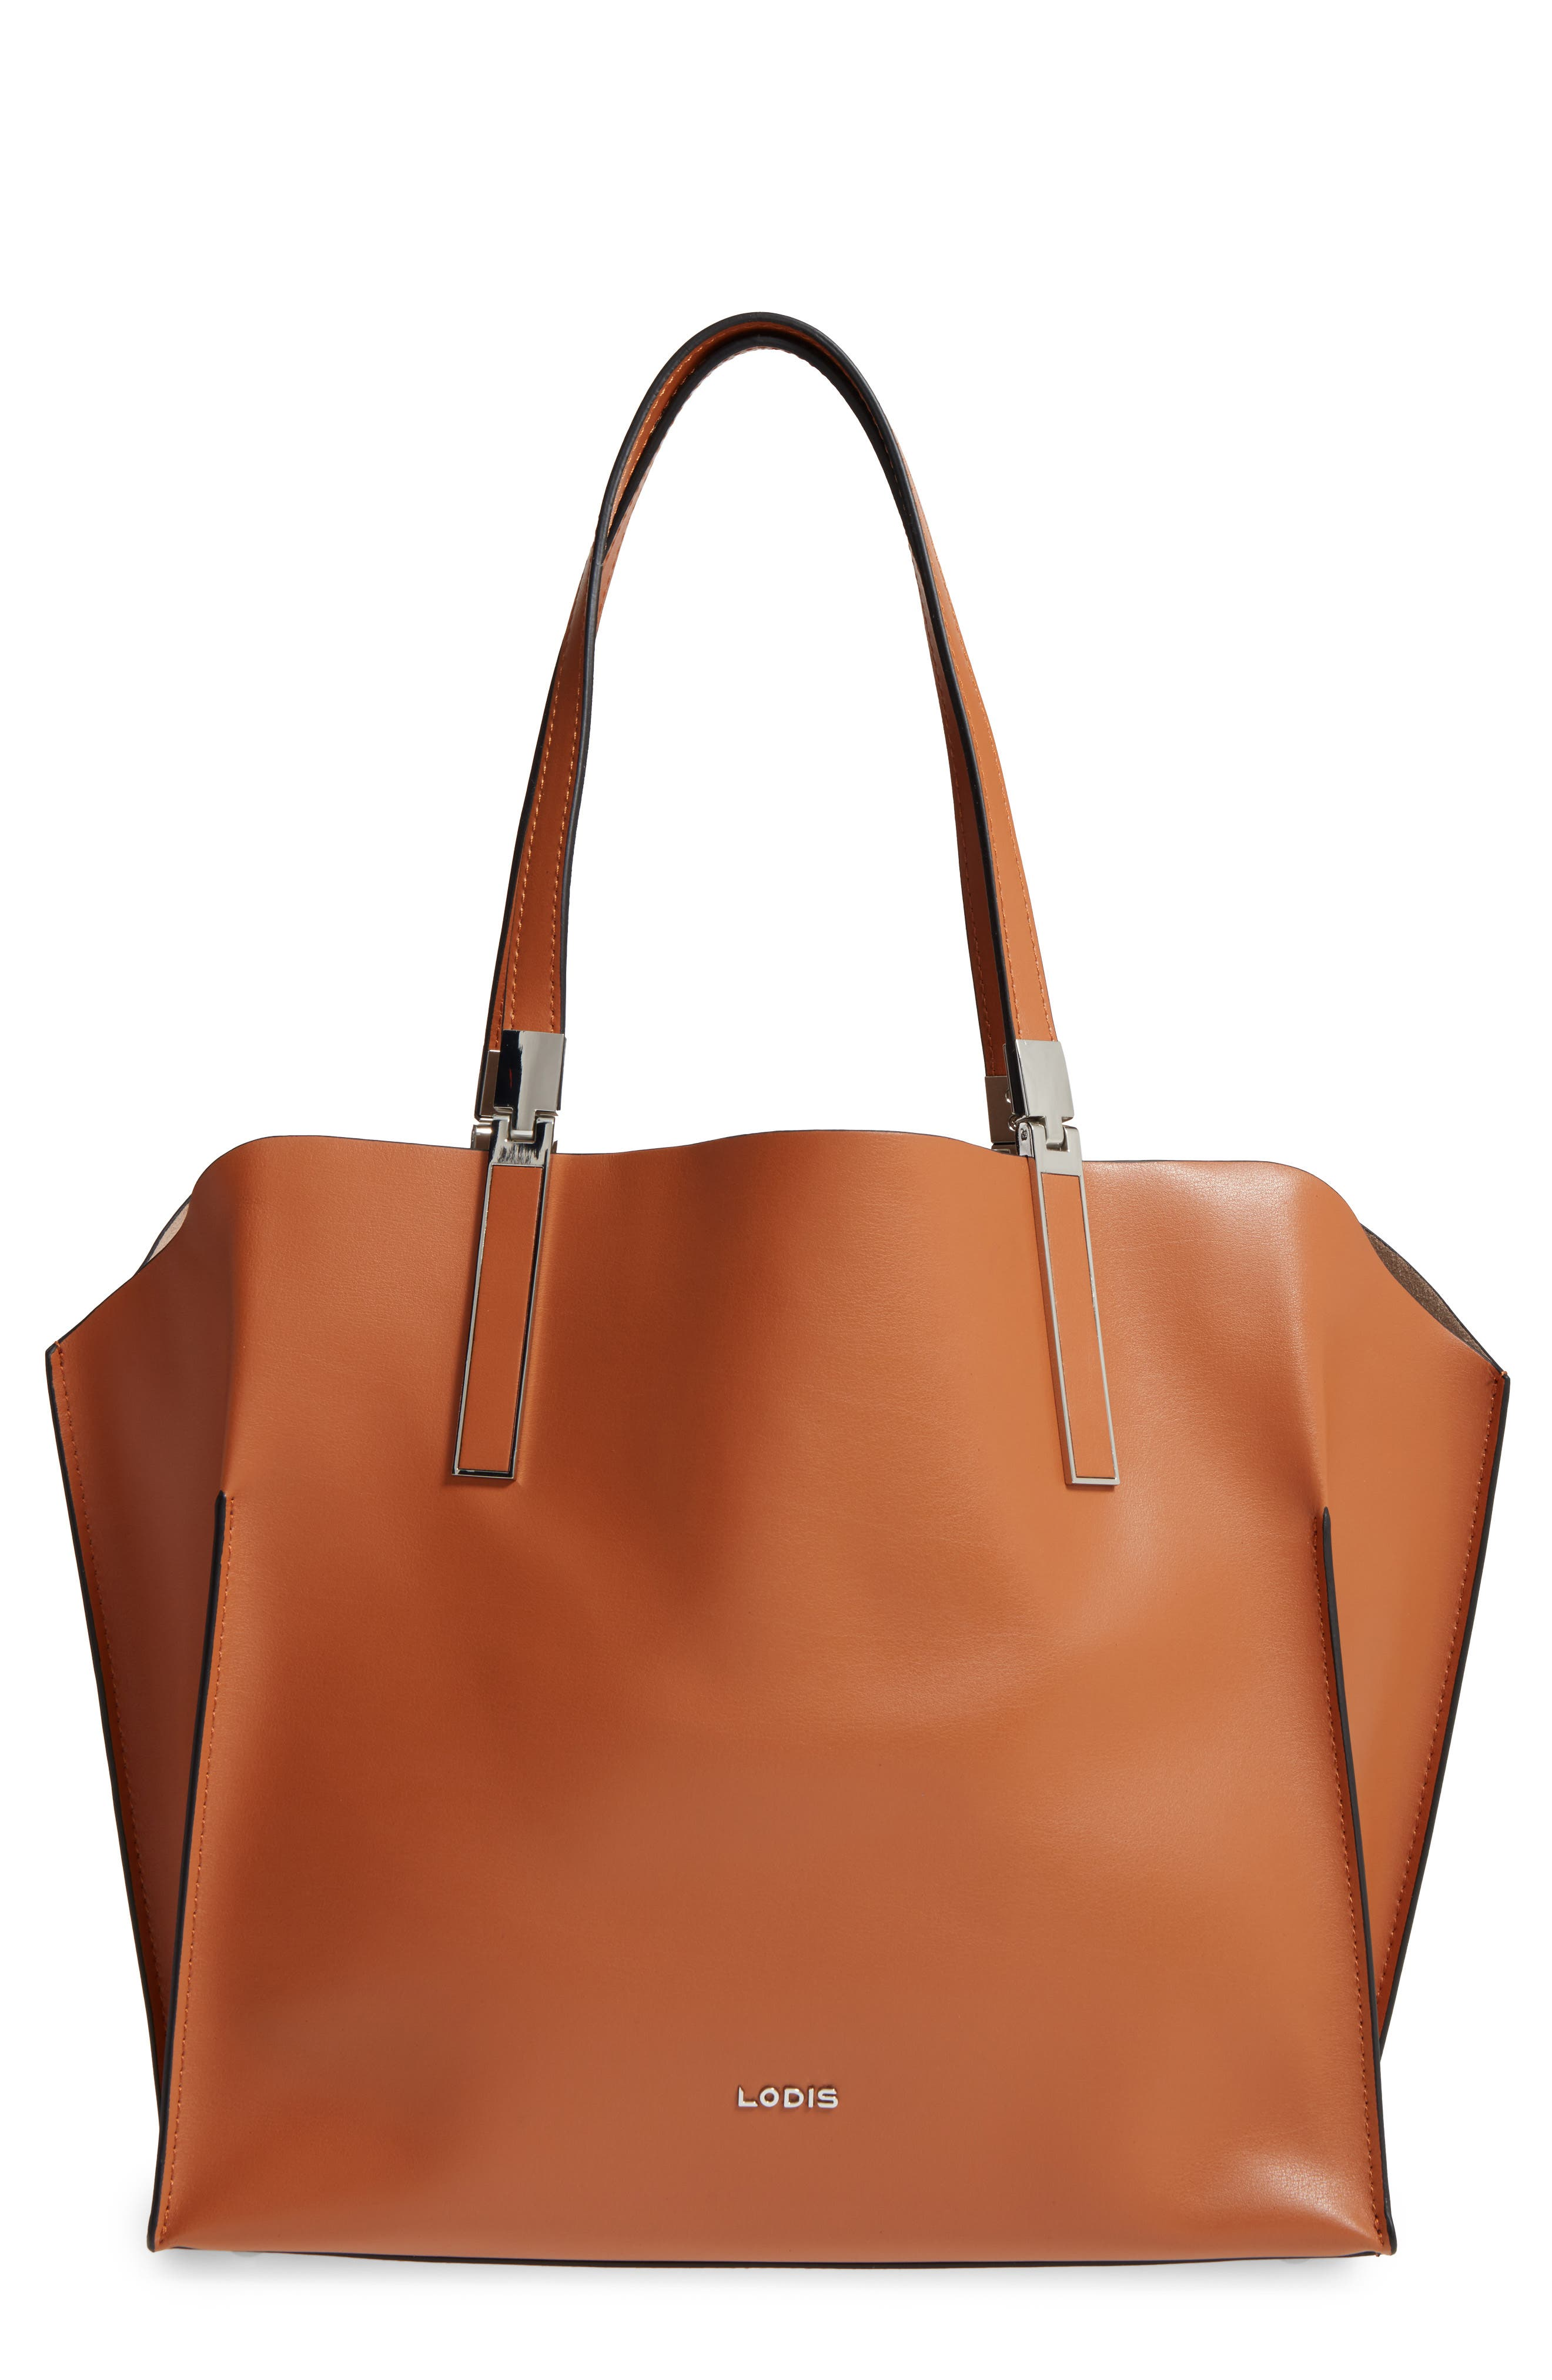 LODIS 'Blair Collection - Anita' Leather Tote